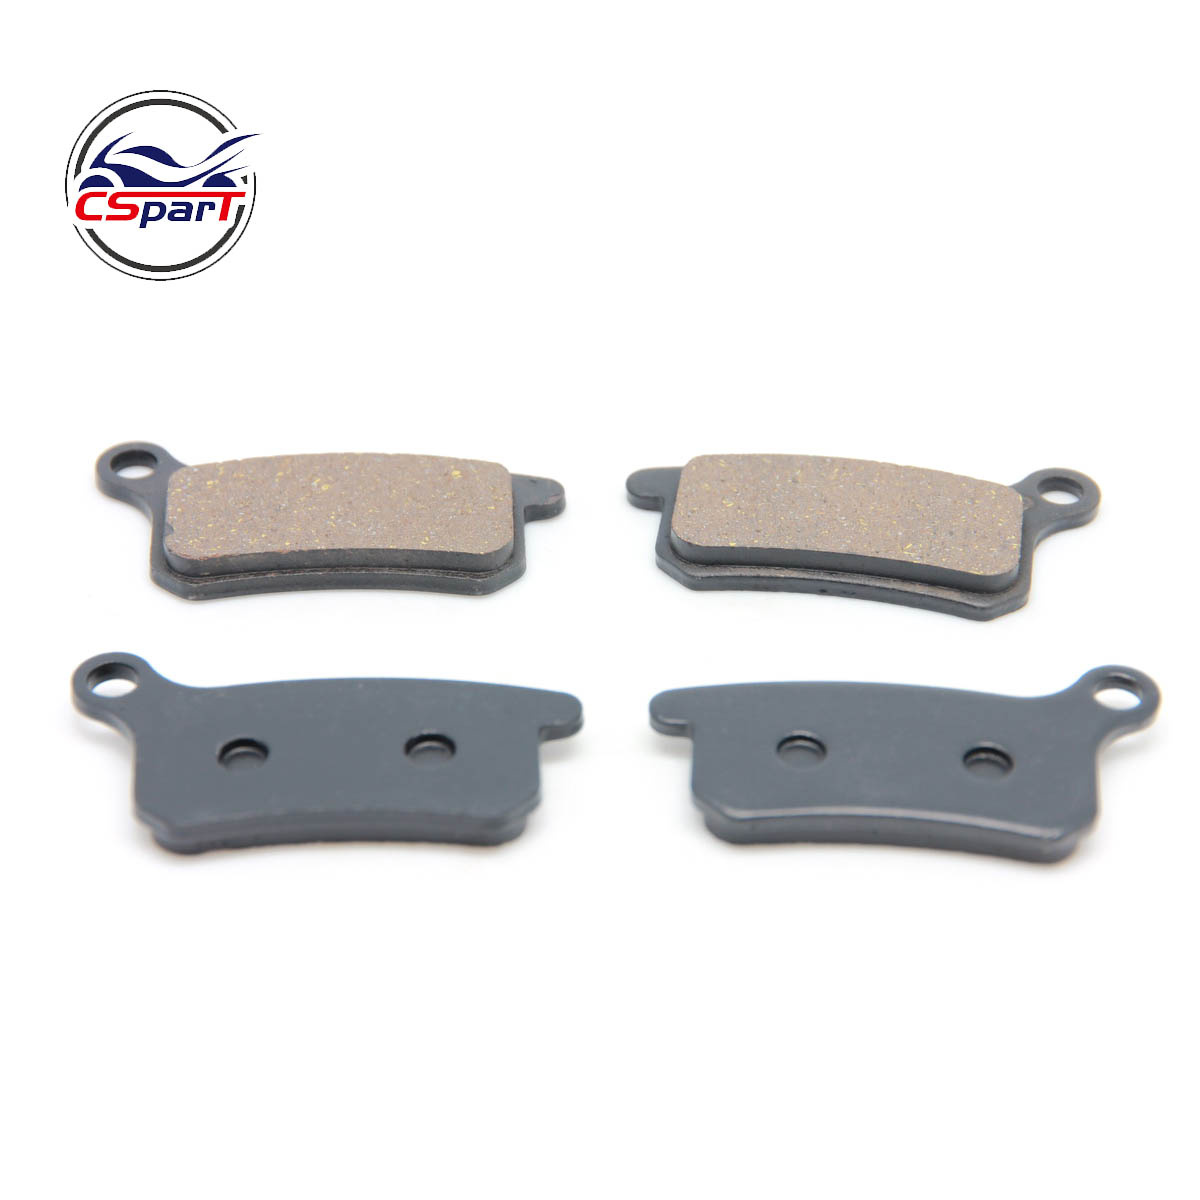 2 SET Semi-metallic Non-asbestos Front Rear Brake Pads For 2009 2010 2011 2012 2013 2014 2015 2016 KTM 65 SX XC